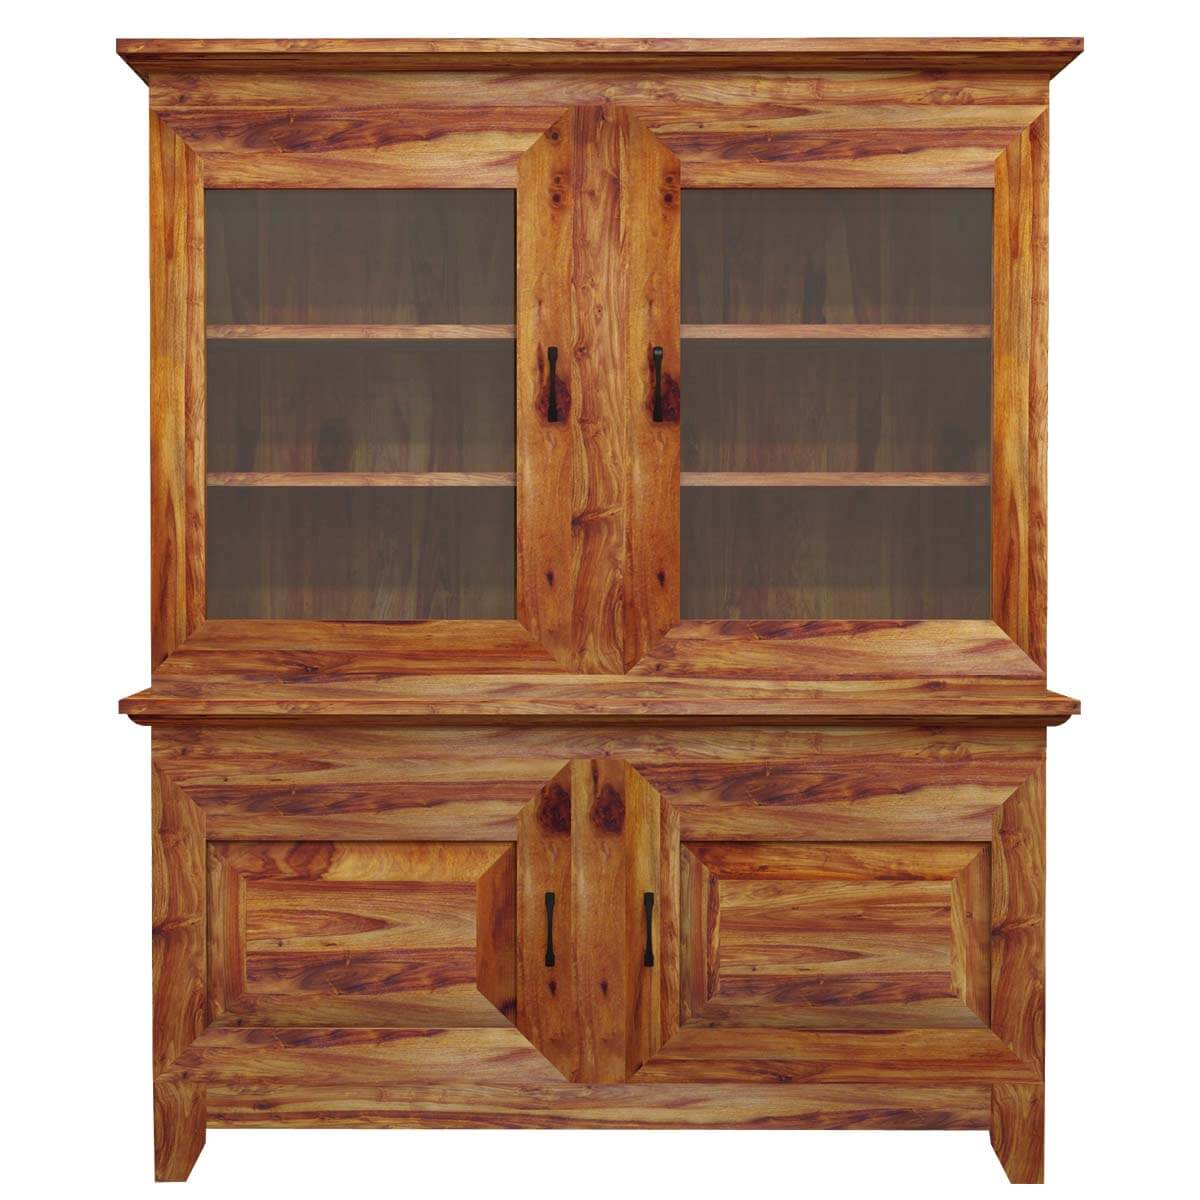 Sierra nevada traditional glass door solid wood hutch for Solid wood door with glass